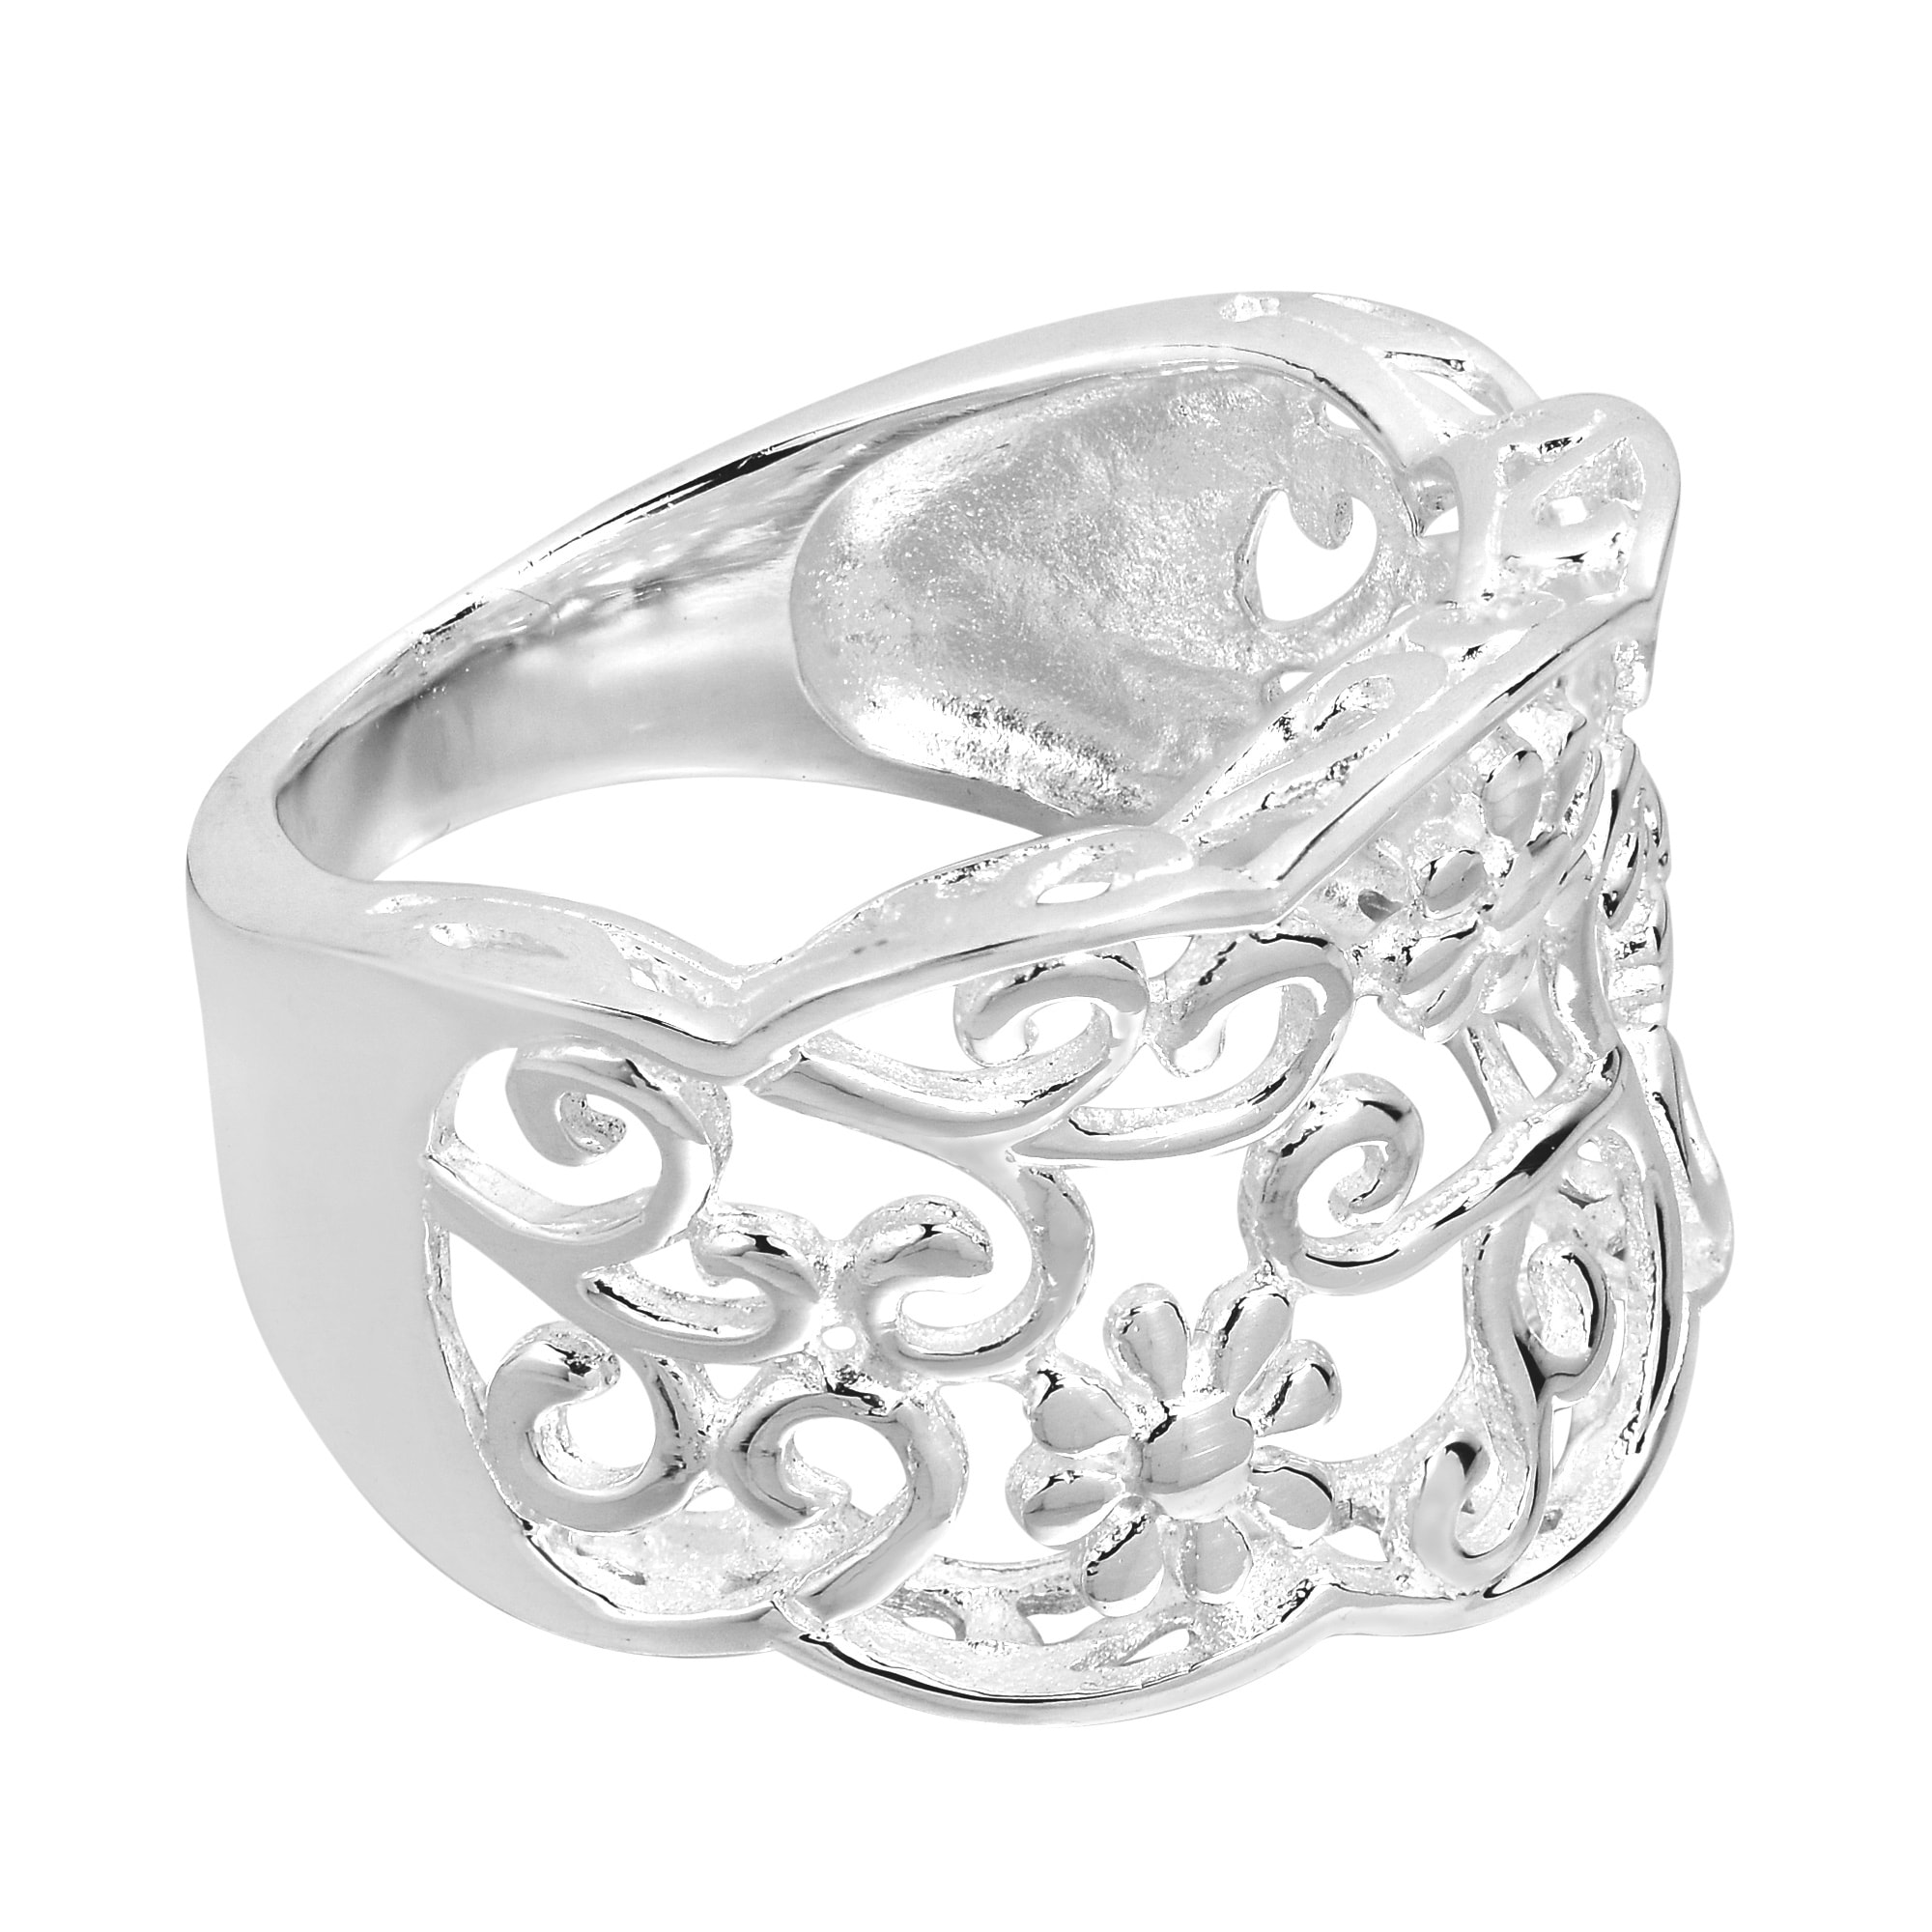 emeritus frog angle the edit images ring ghost com great marcasite search silver papa rings